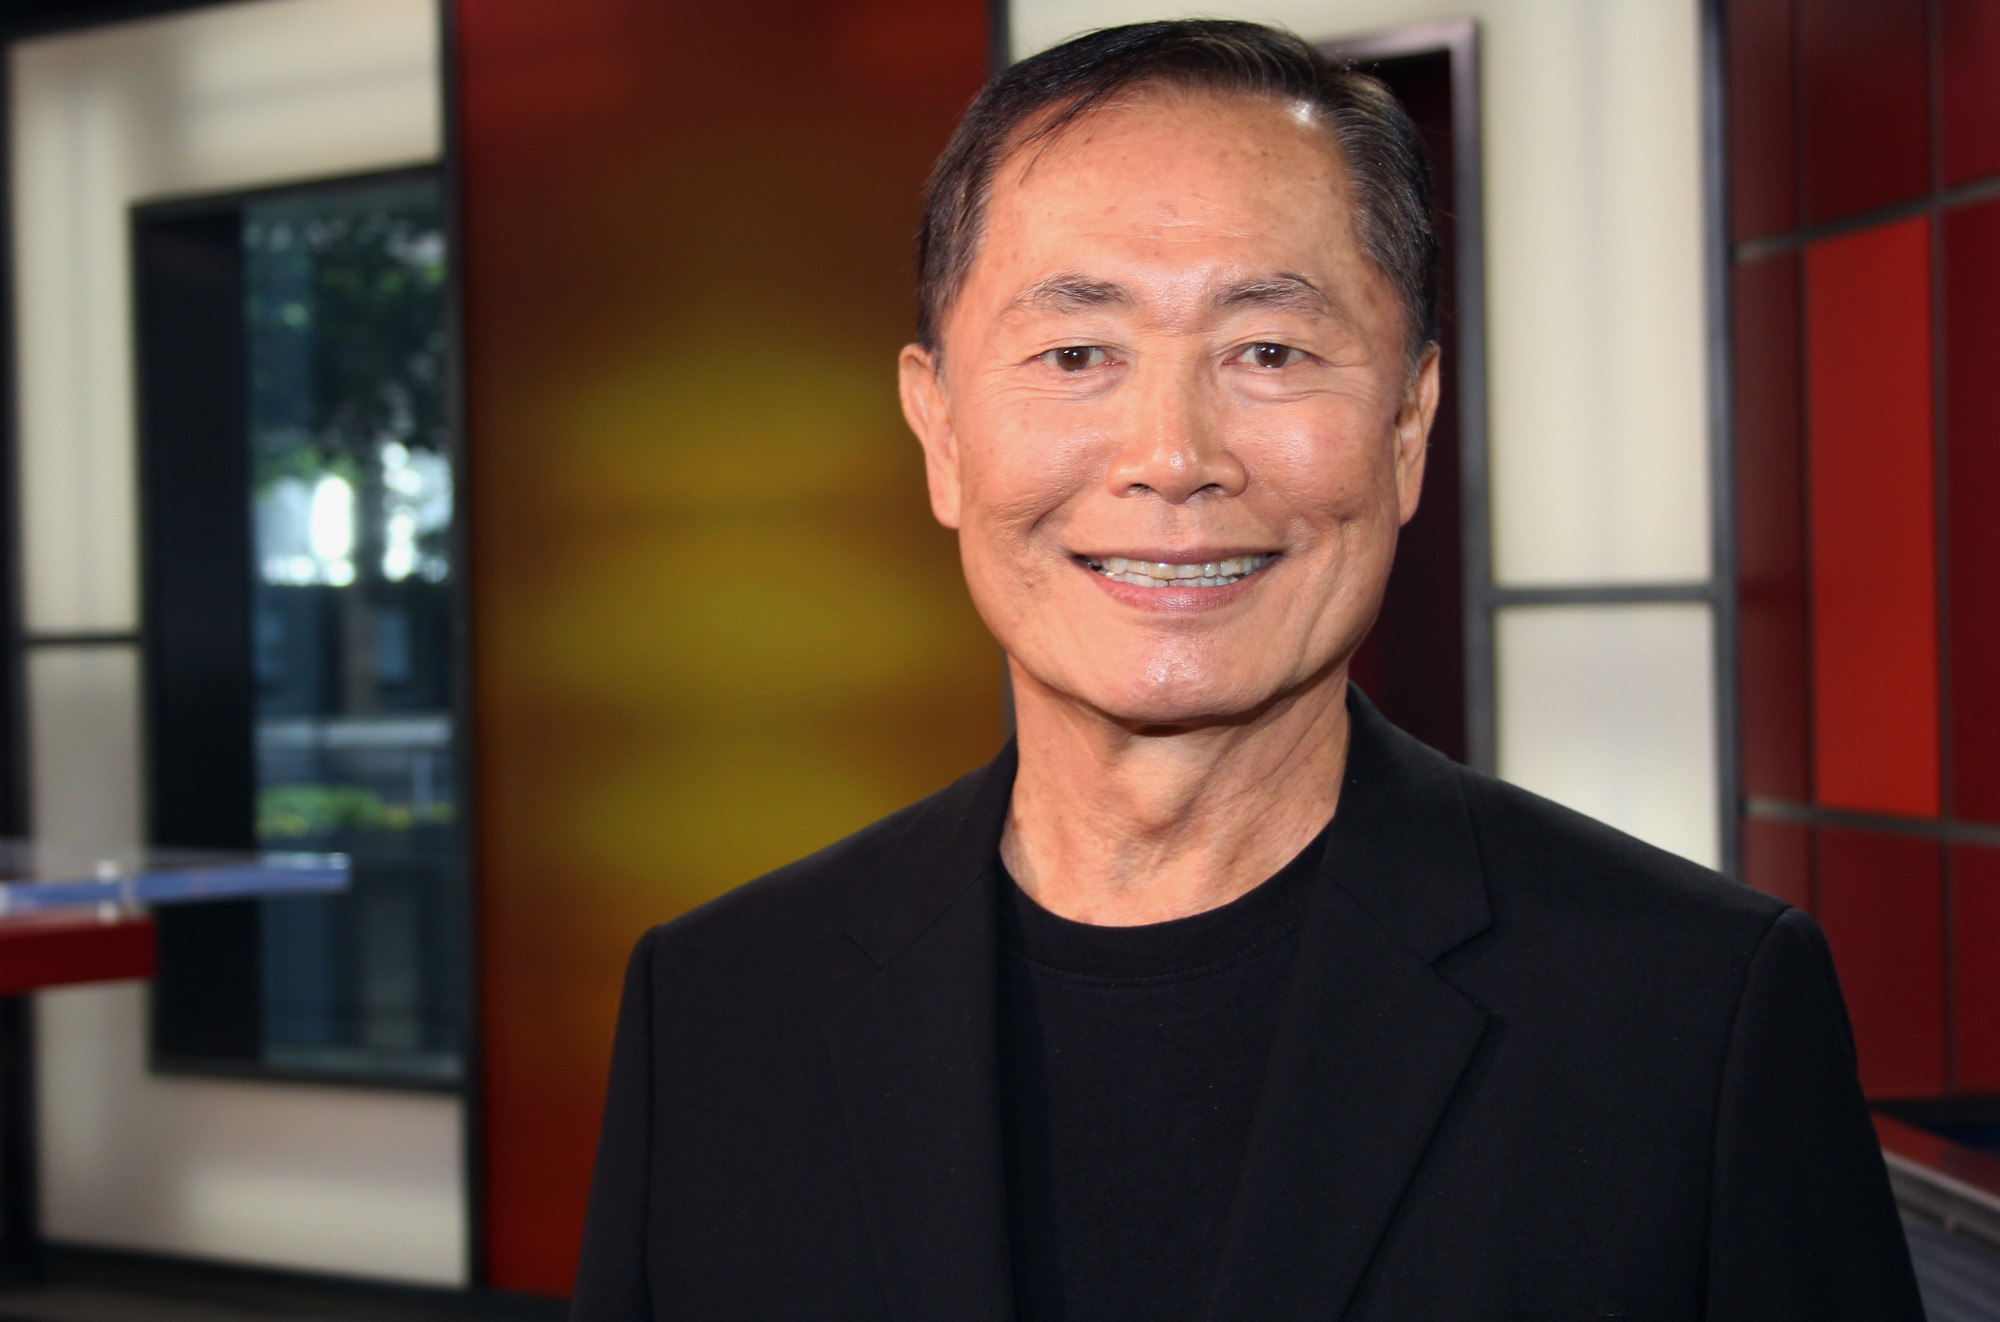 George Takei earned a  million dollar salary, leaving the net worth at 12 million in 2017